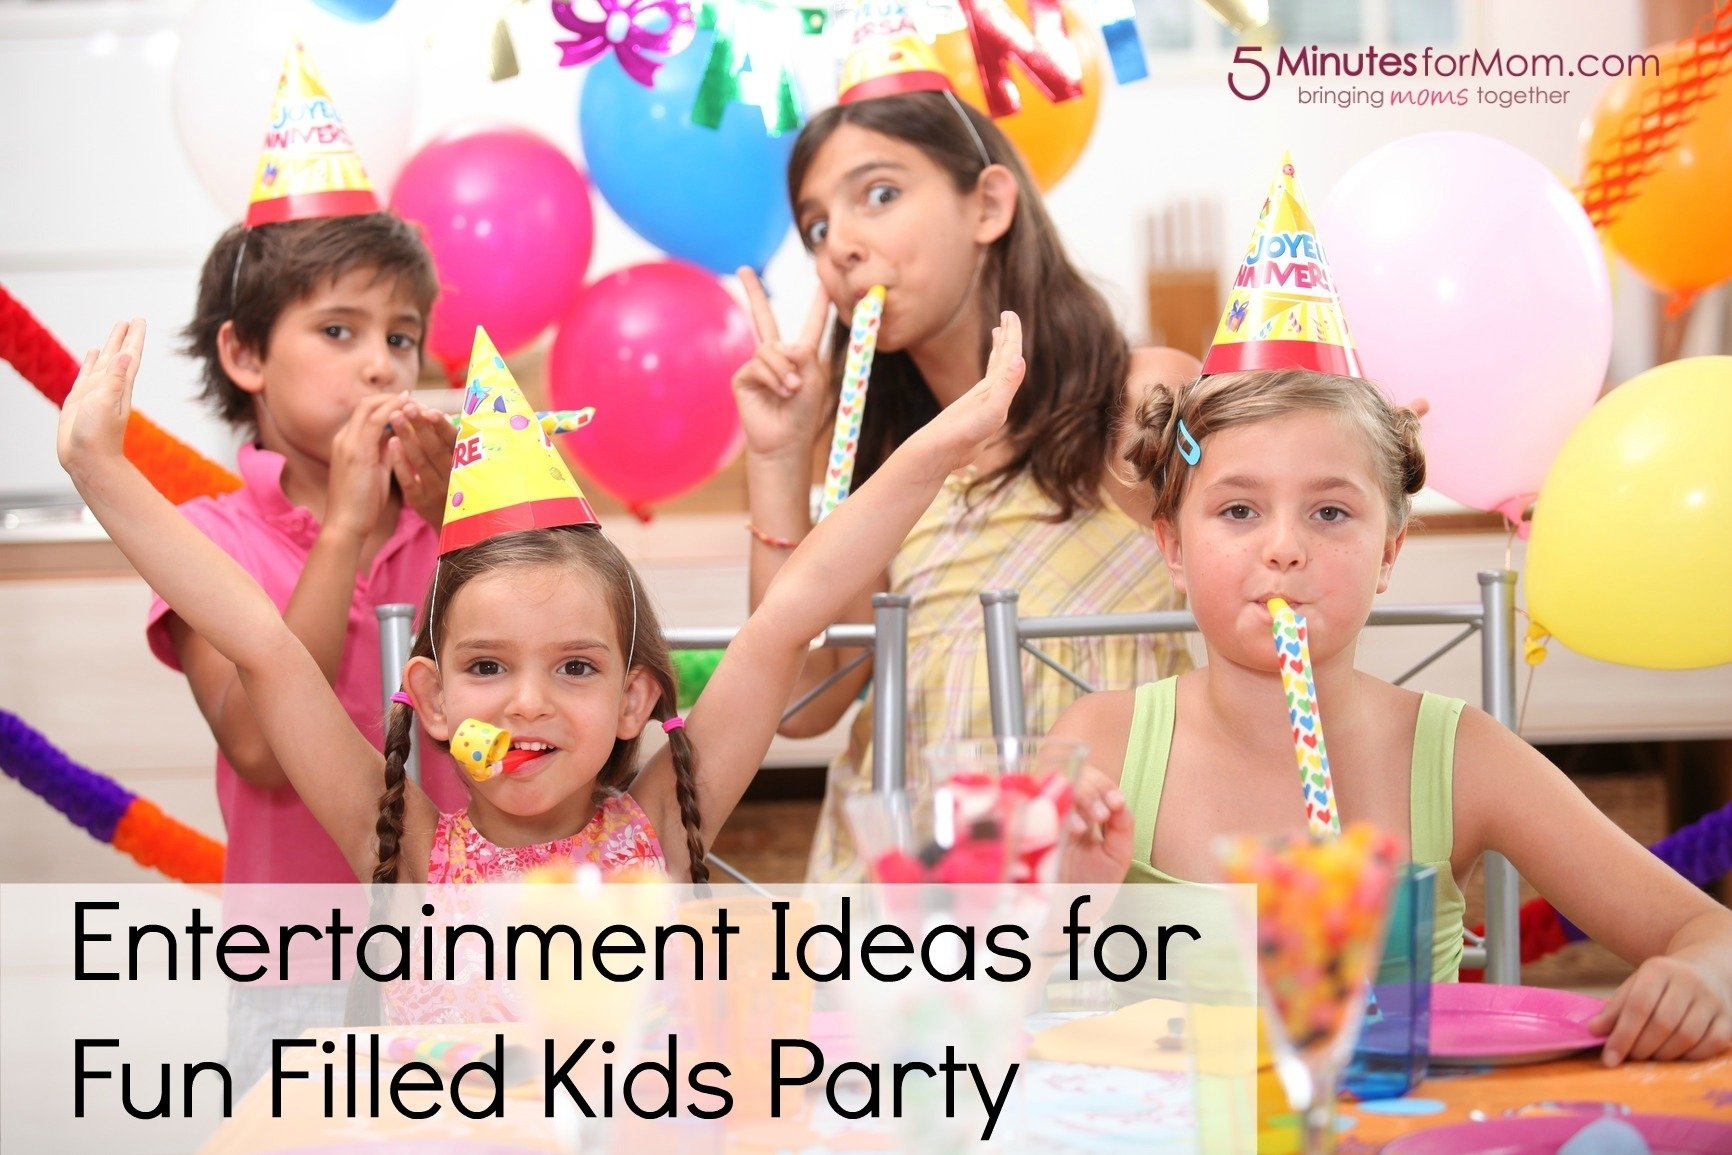 entertainment ideas for fun filled kids party - 5 minutes for mom